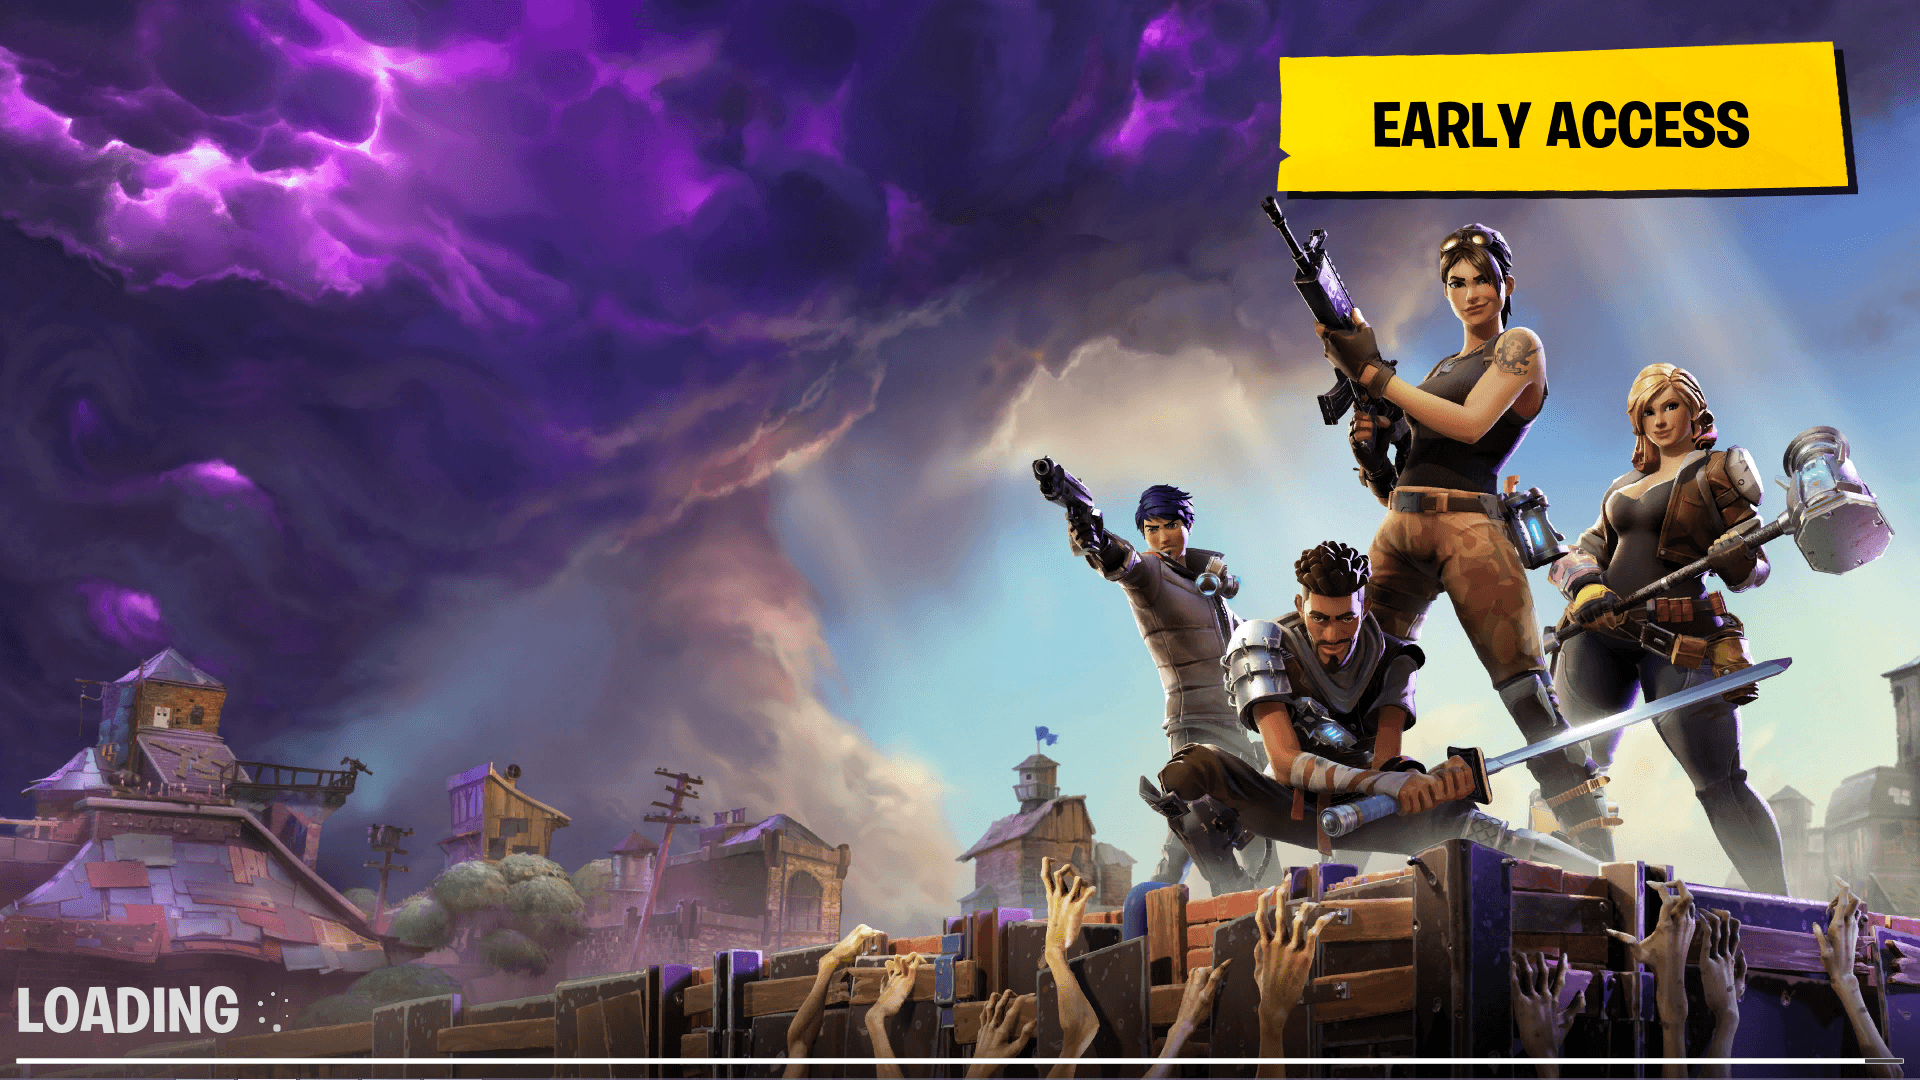 Just installed the game. Can't get past this first loading screen no ...